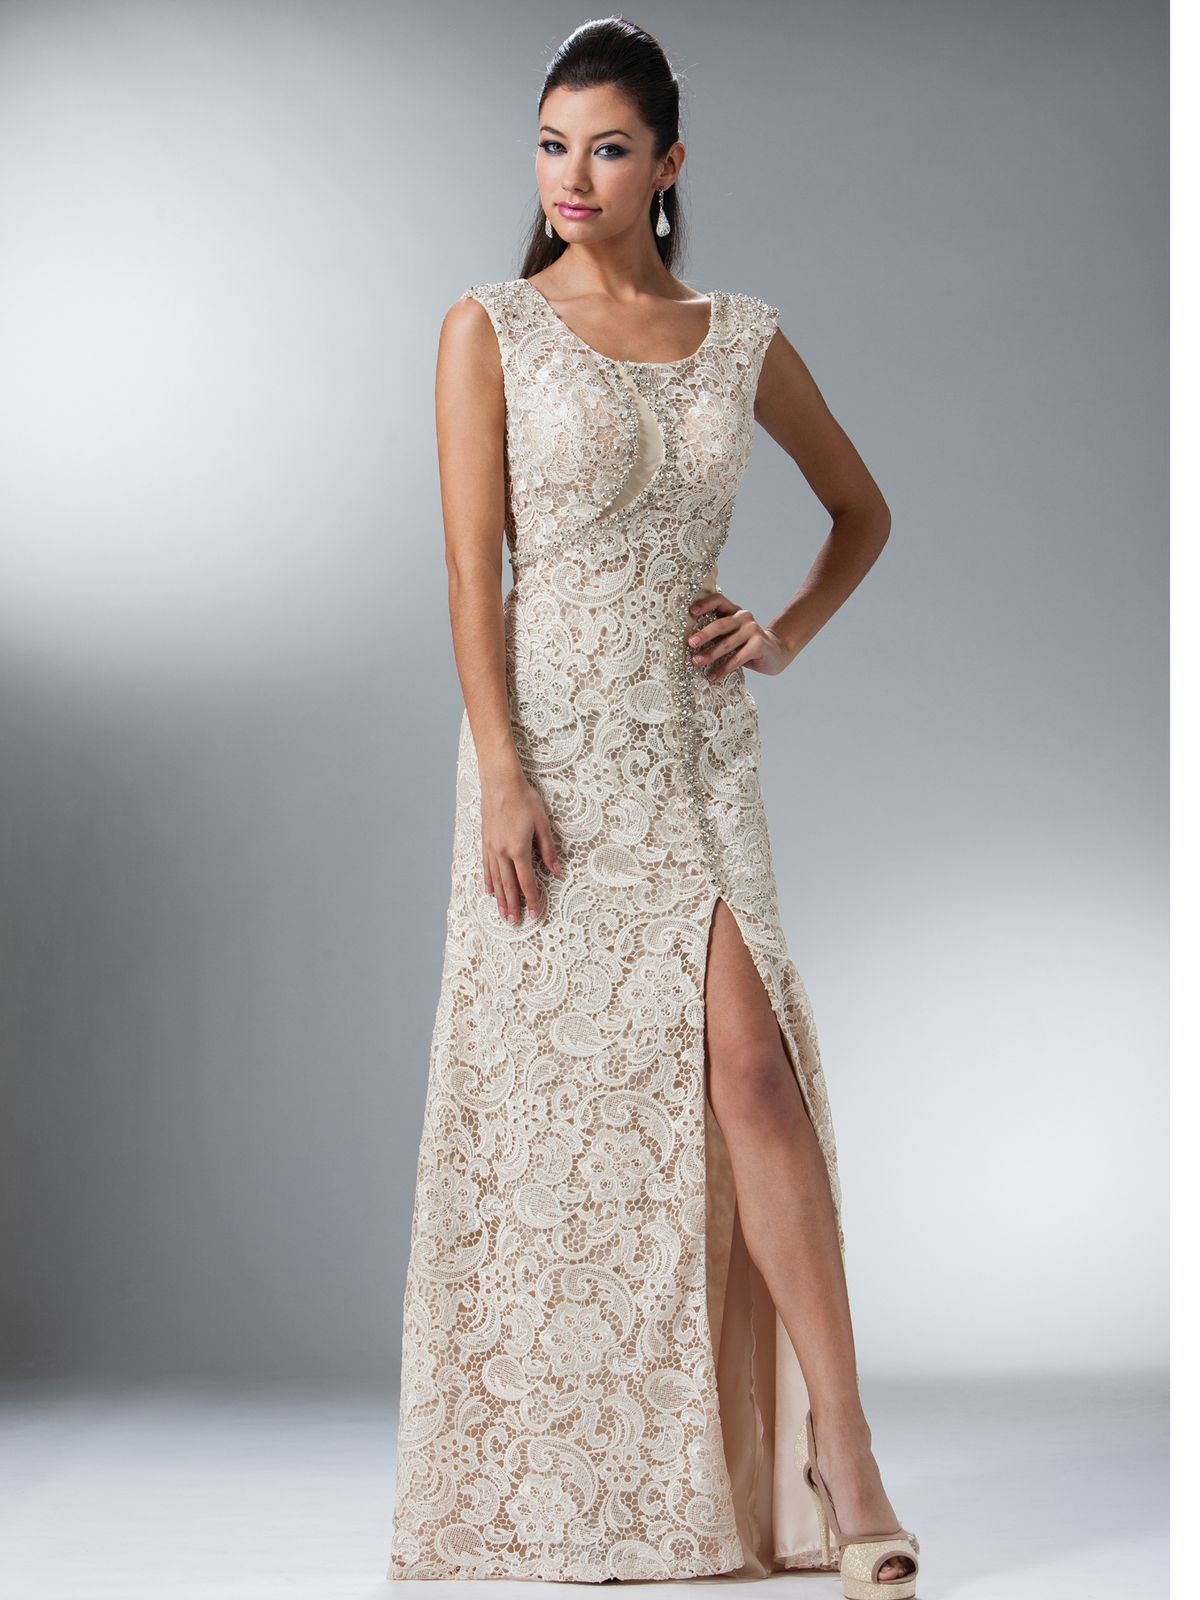 739fec15712 Champagne Vintage Lace Fitted Evening Dress